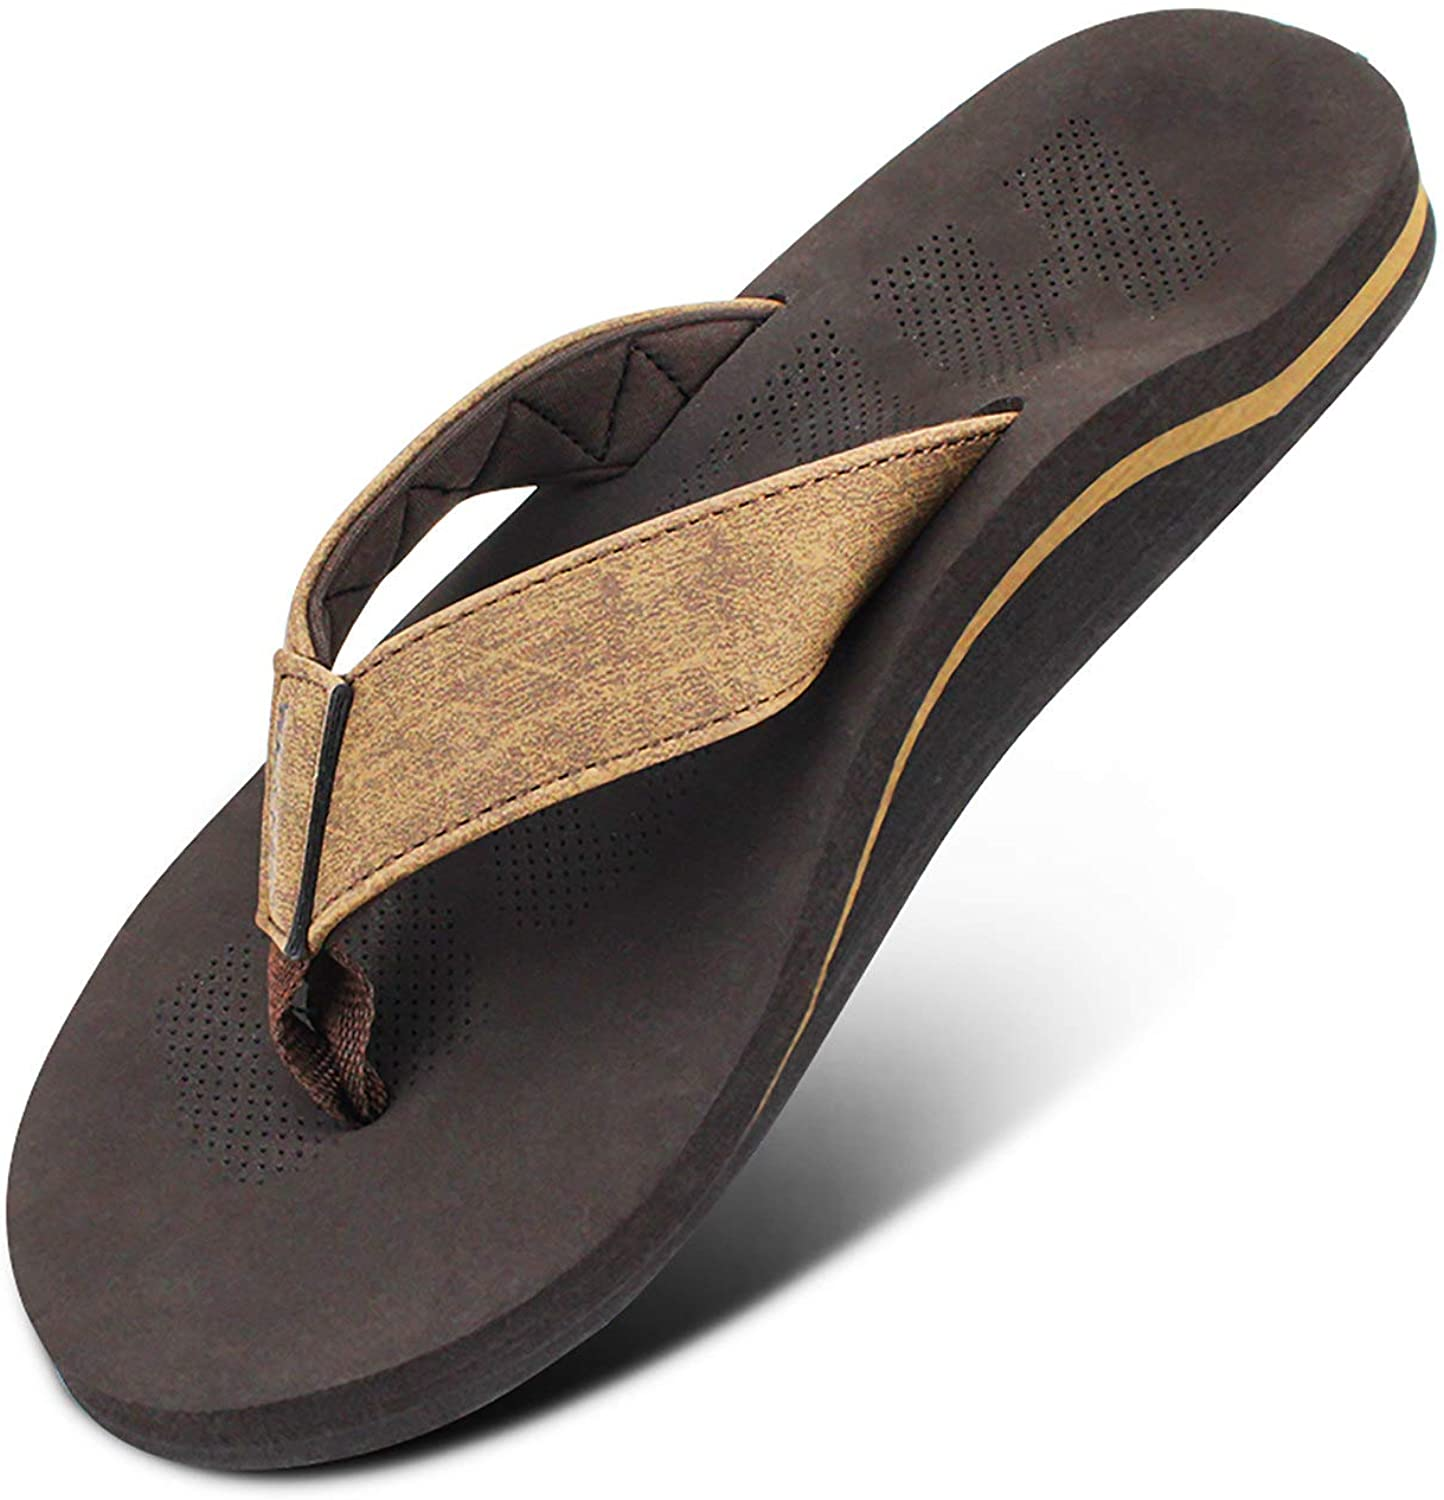 Men Sandals Flip Flop with Orthotic Flat Plantar Japan's largest assortment Feet Safety and trust For Fascii